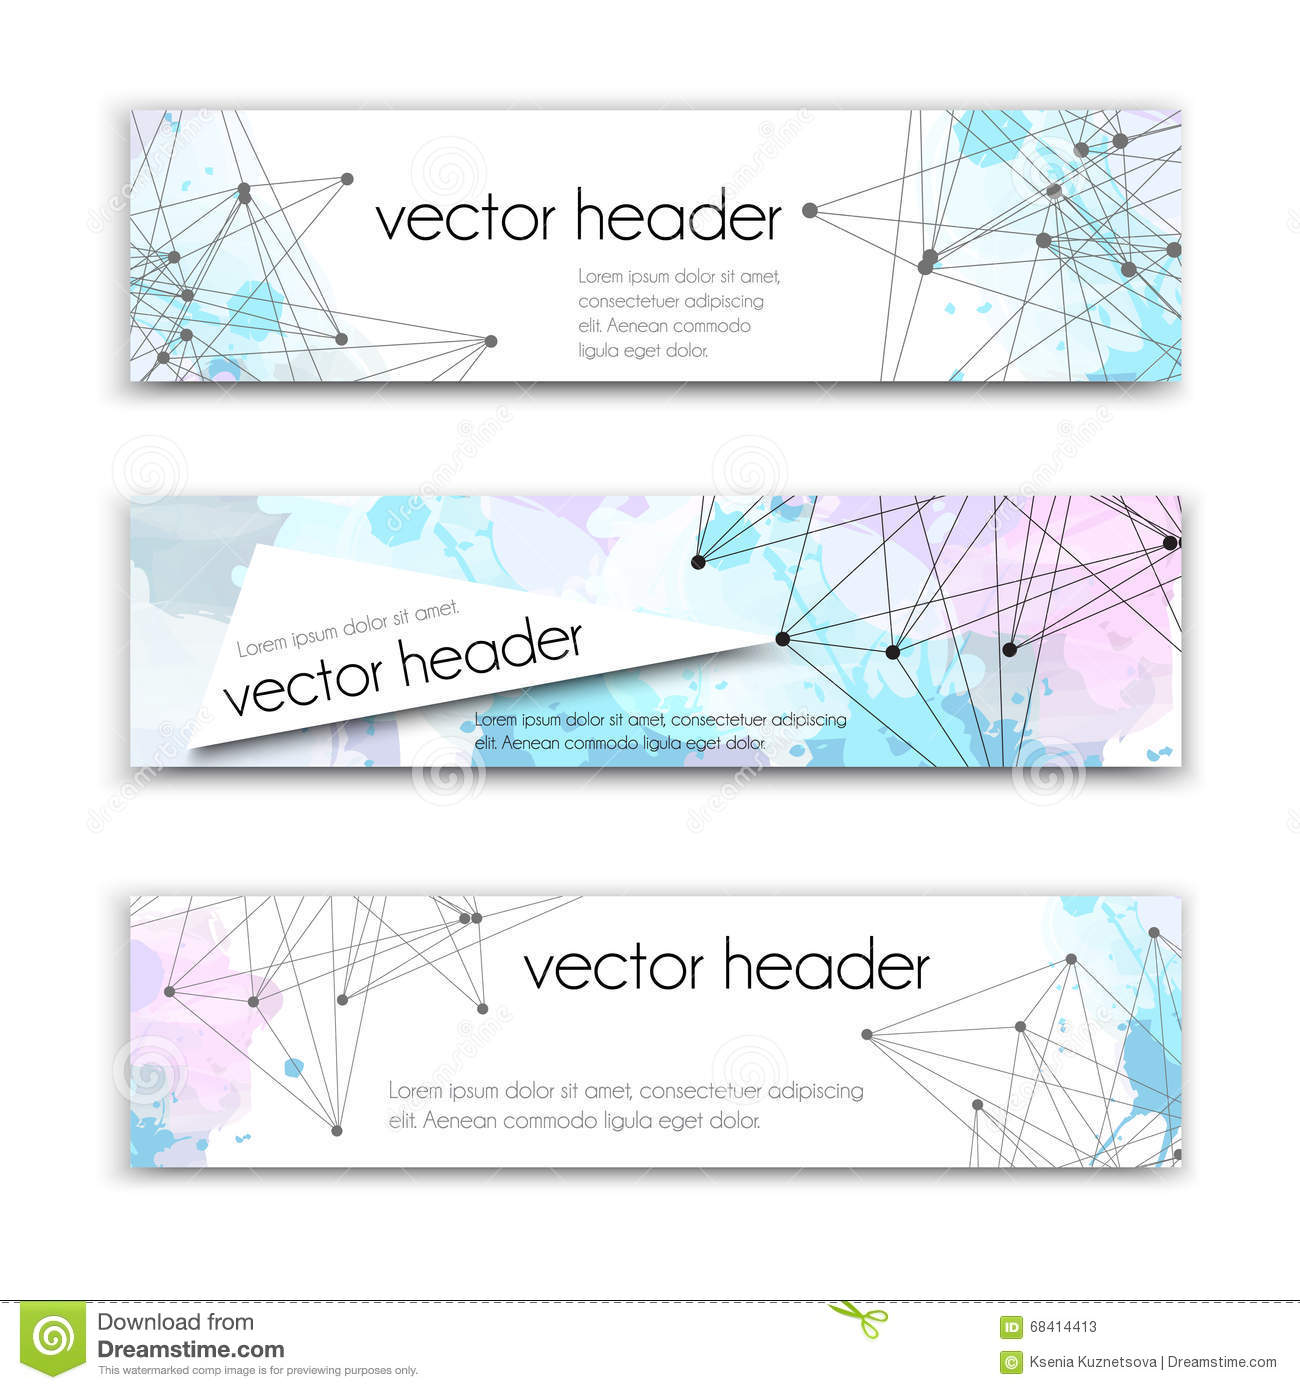 Vector Illustration Web Designs: Set Of Technology Vector Banners Template Or Website